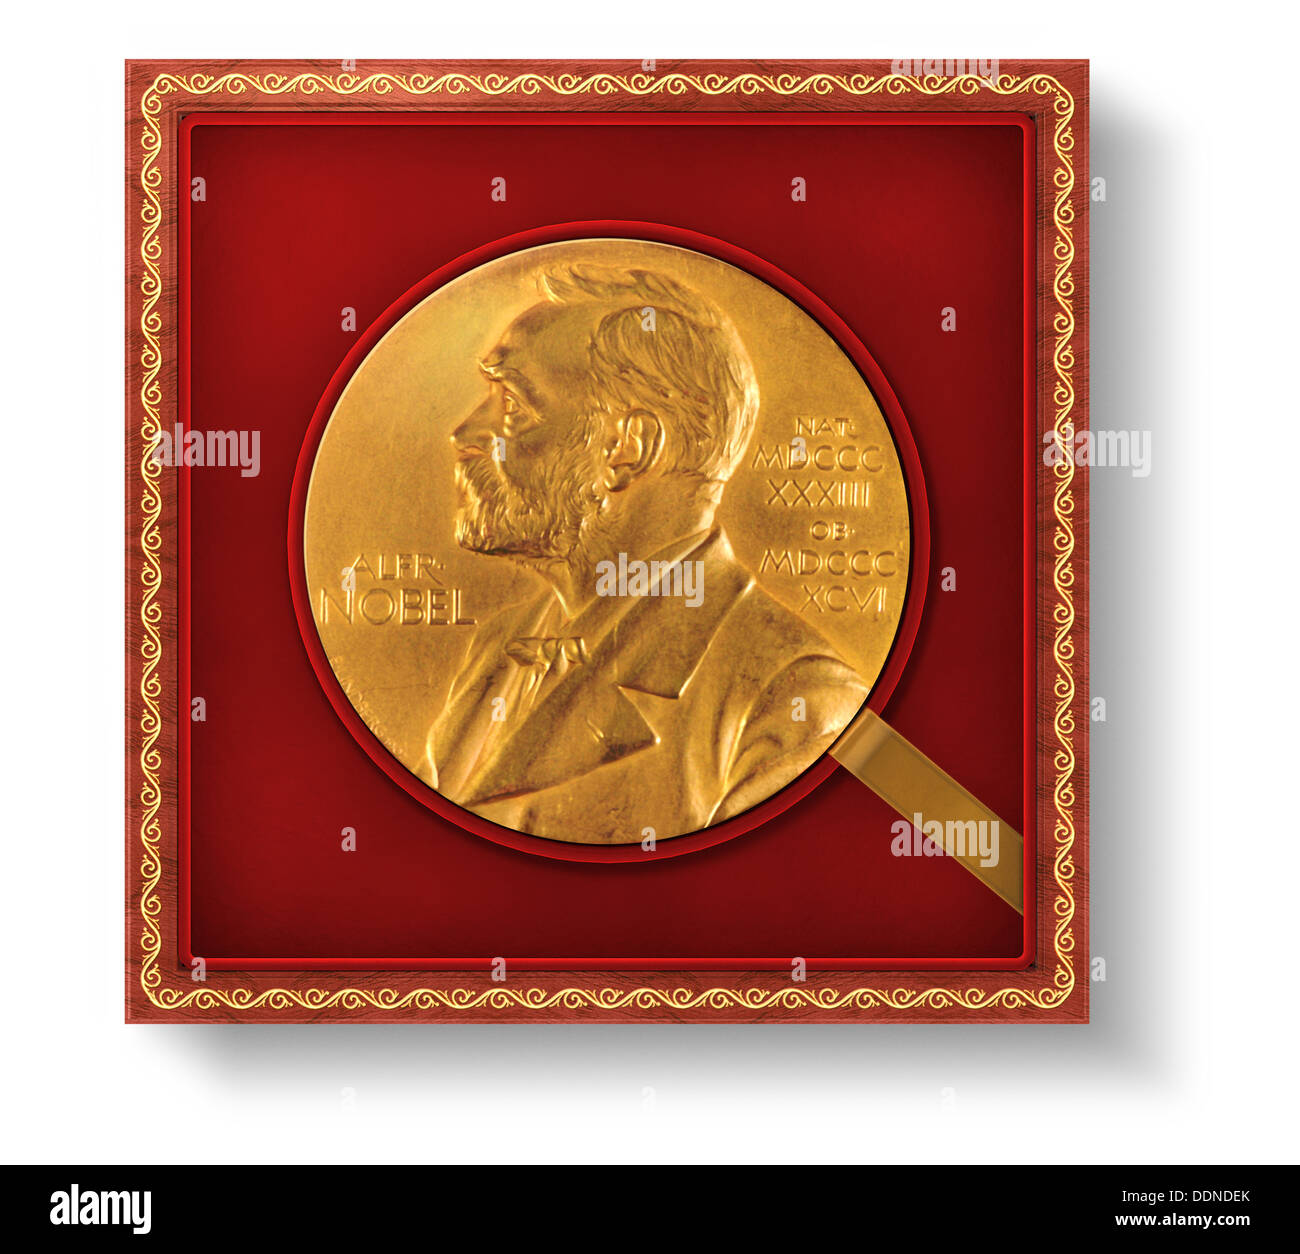 Alfred Nobel, Nobel Prize, honor, award, gold coin - Stock Image